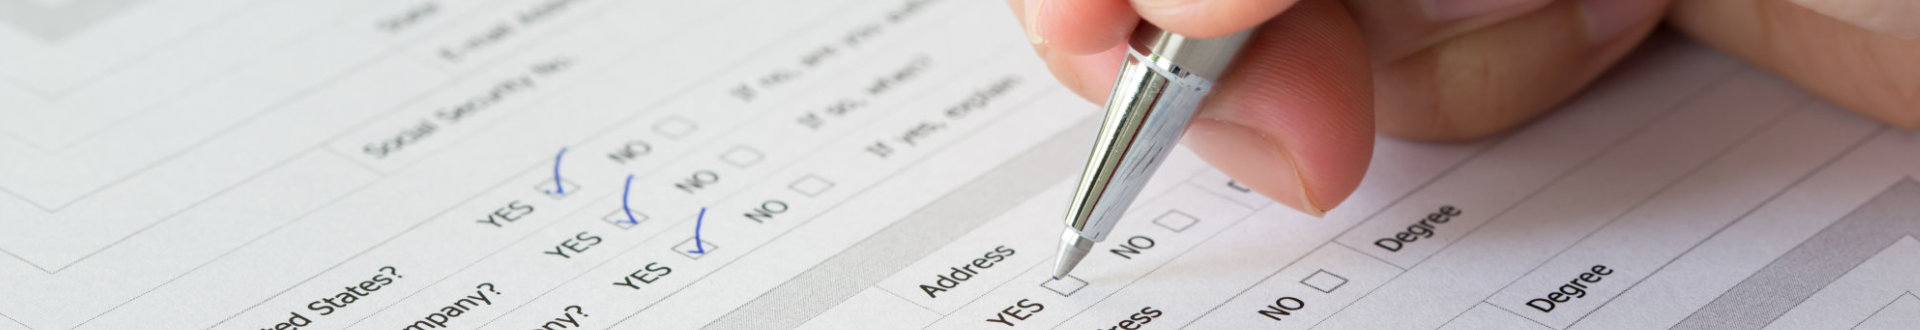 hand with pen over blank check boxes in an application form